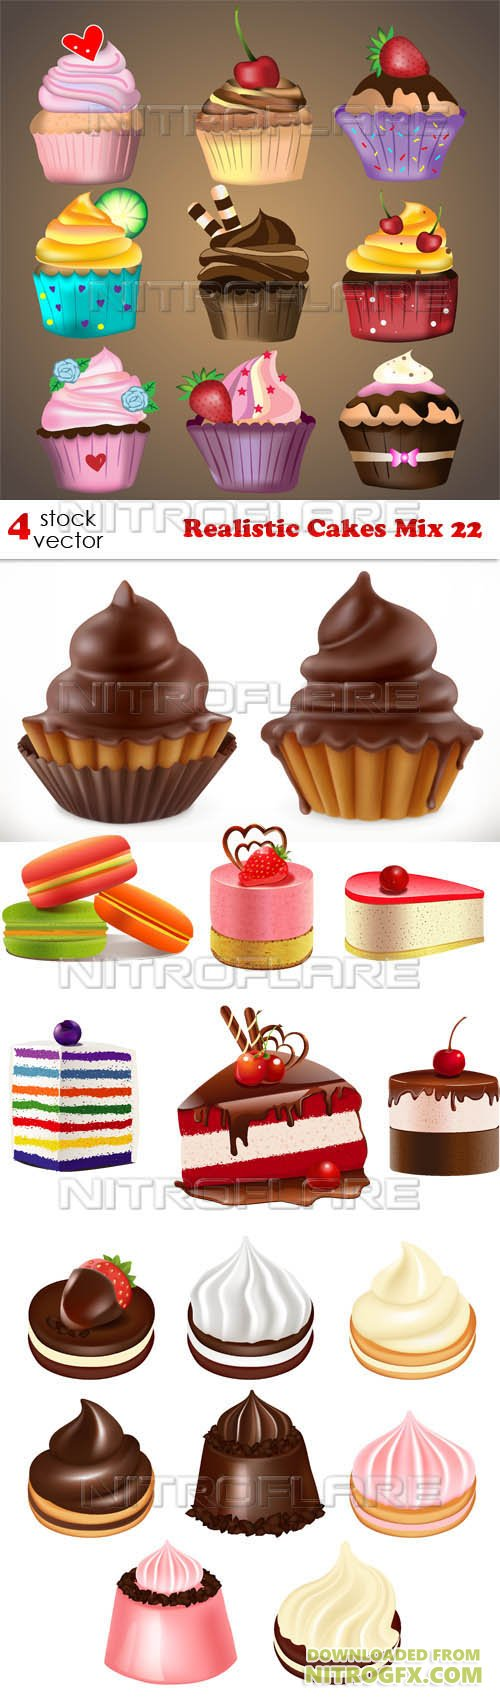 Vectors - Realistic Cakes Mix 22